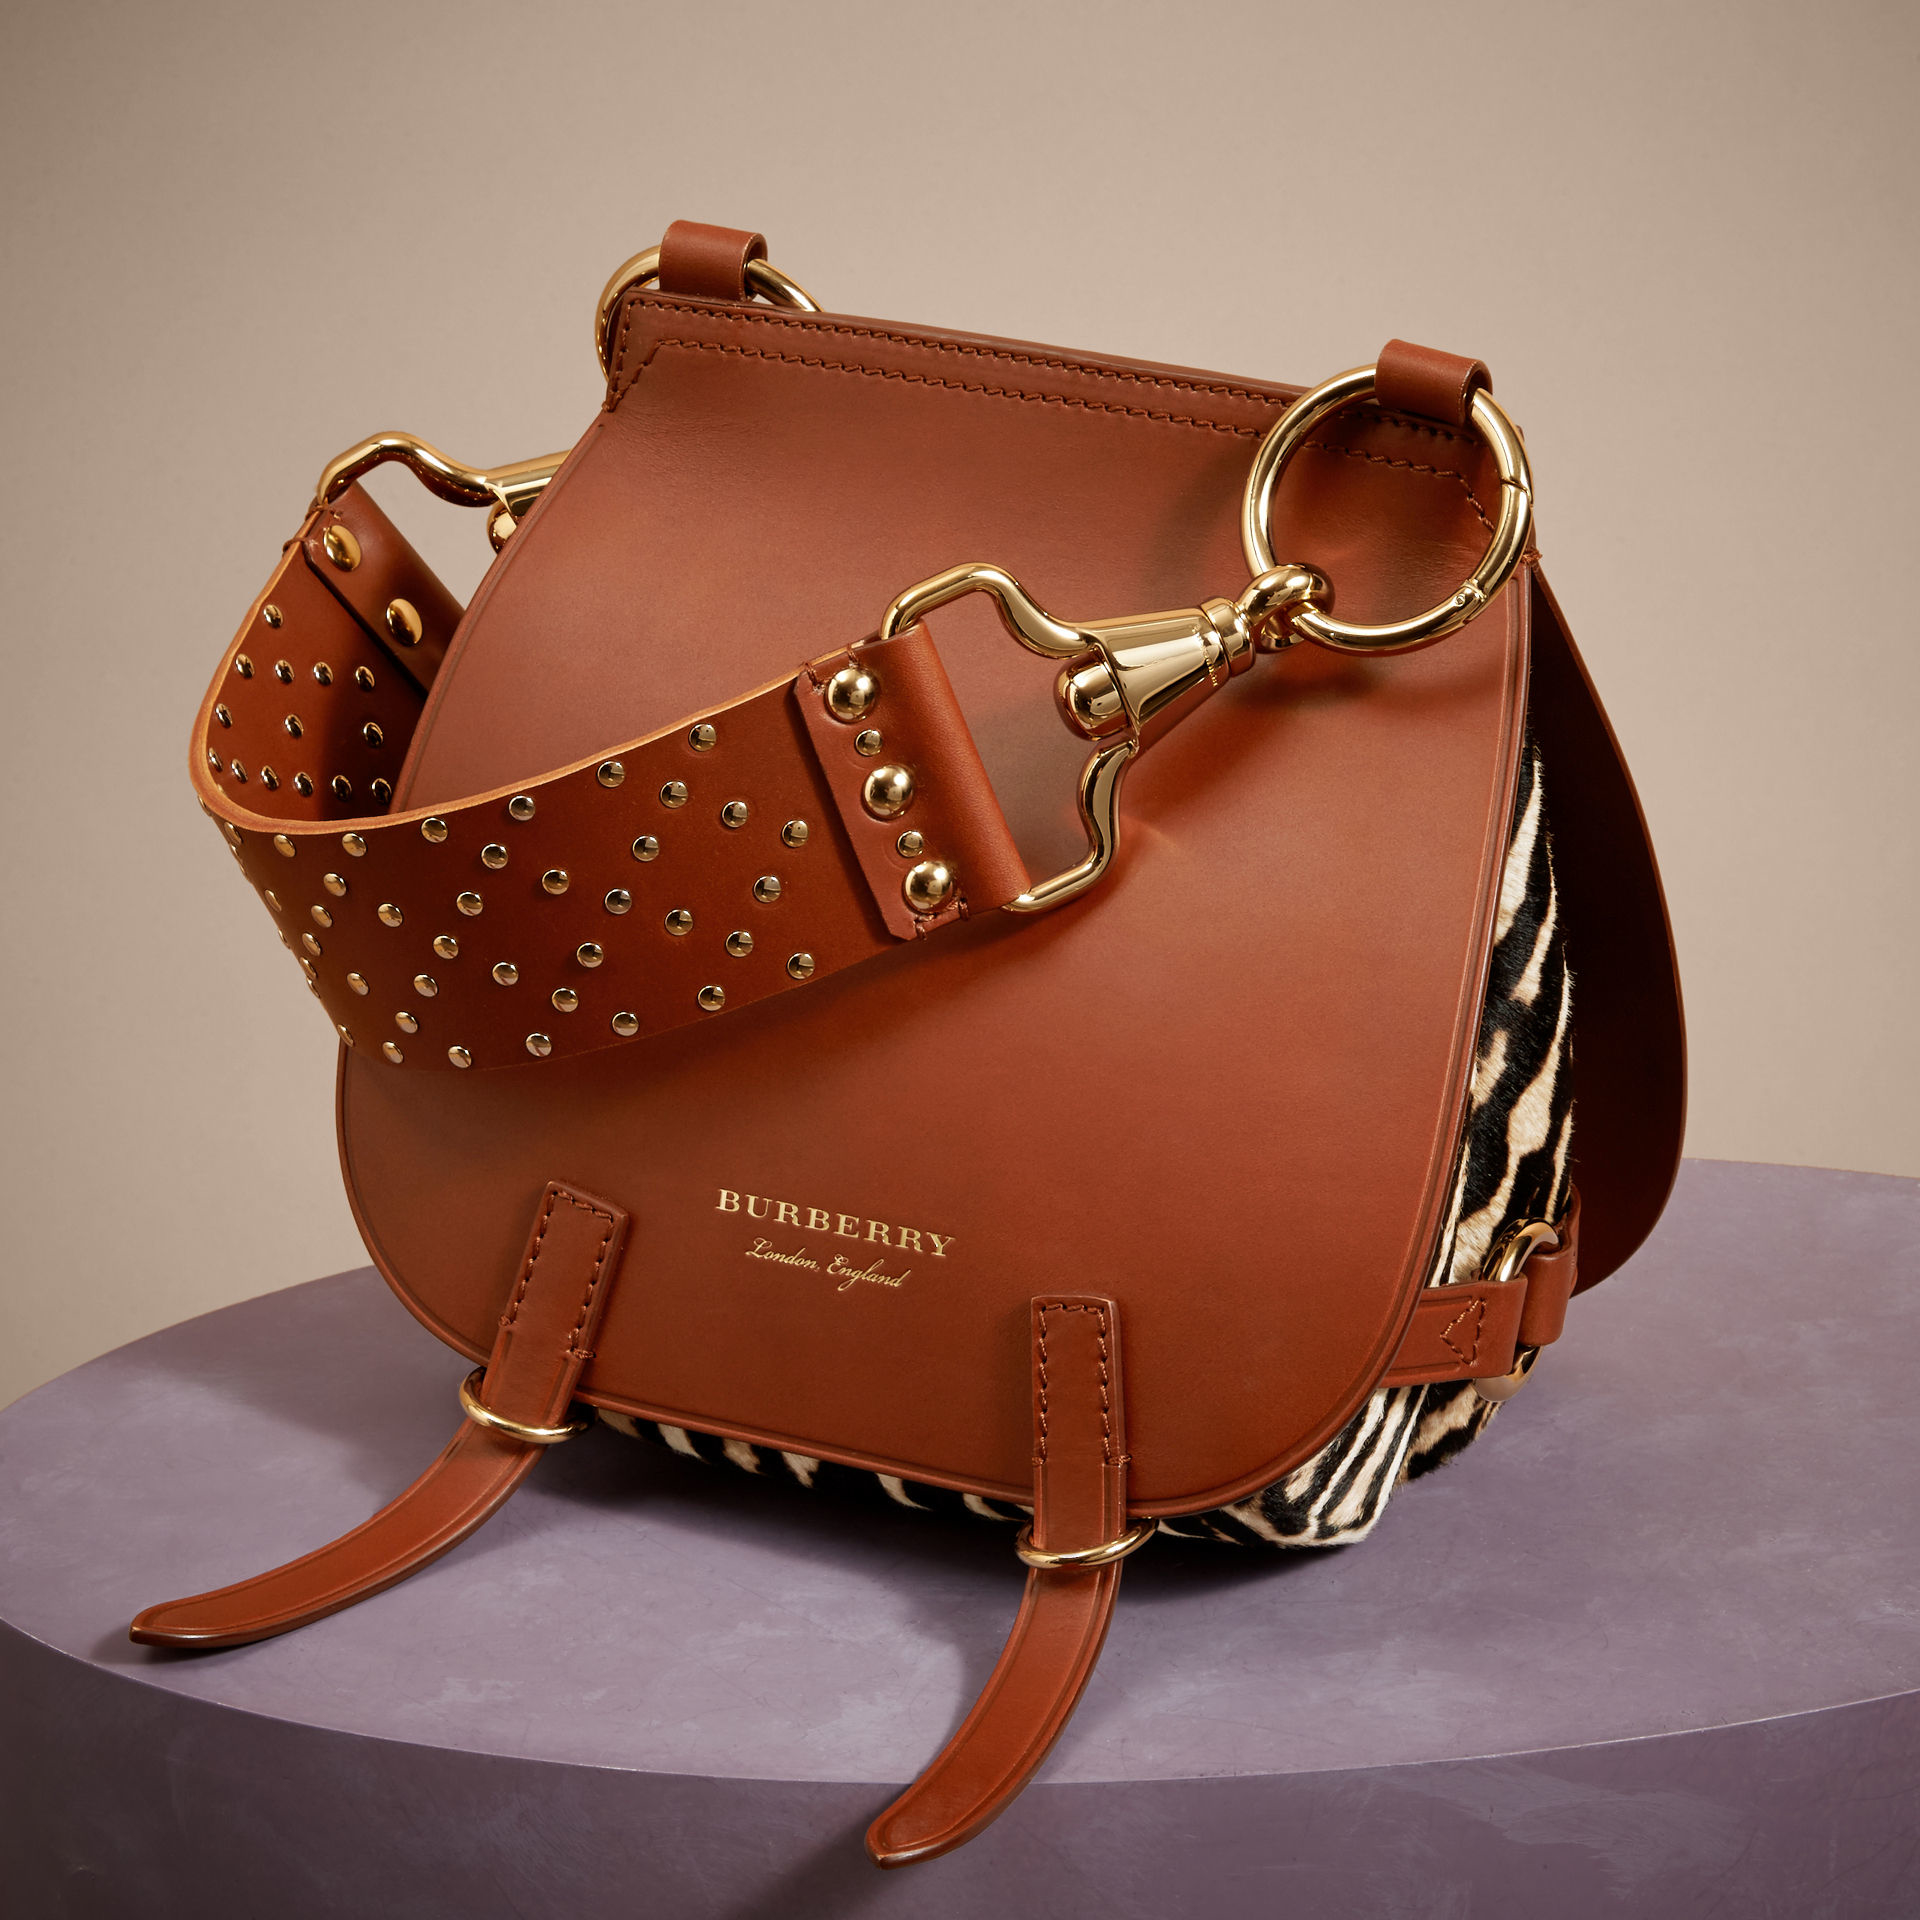 Burberry The Bridle Leopard-Print Calfskin And Leather Shoulder Bag in Brown - Lyst